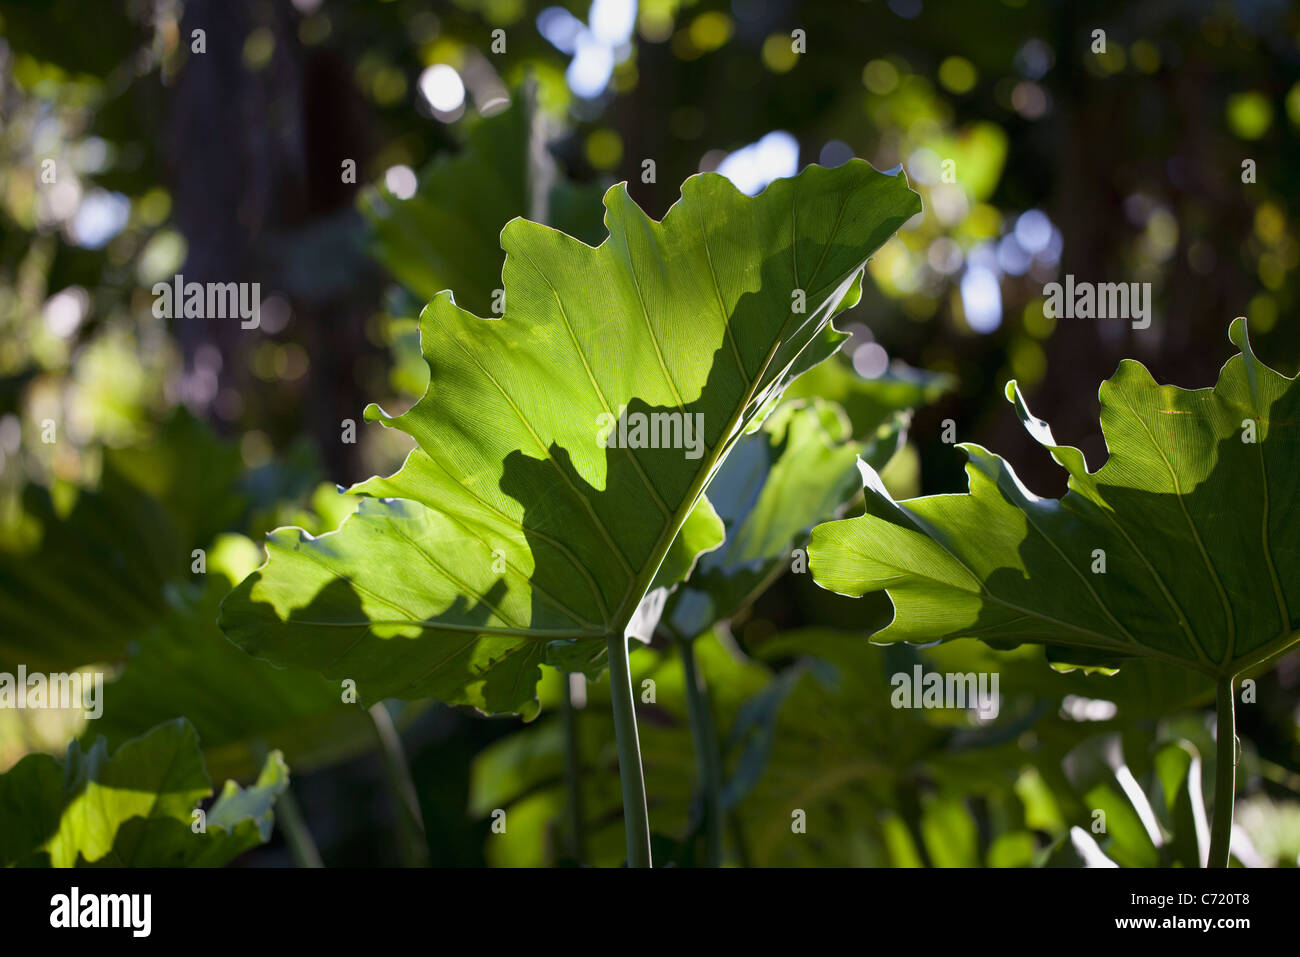 Leaves, low angle view - Stock Image